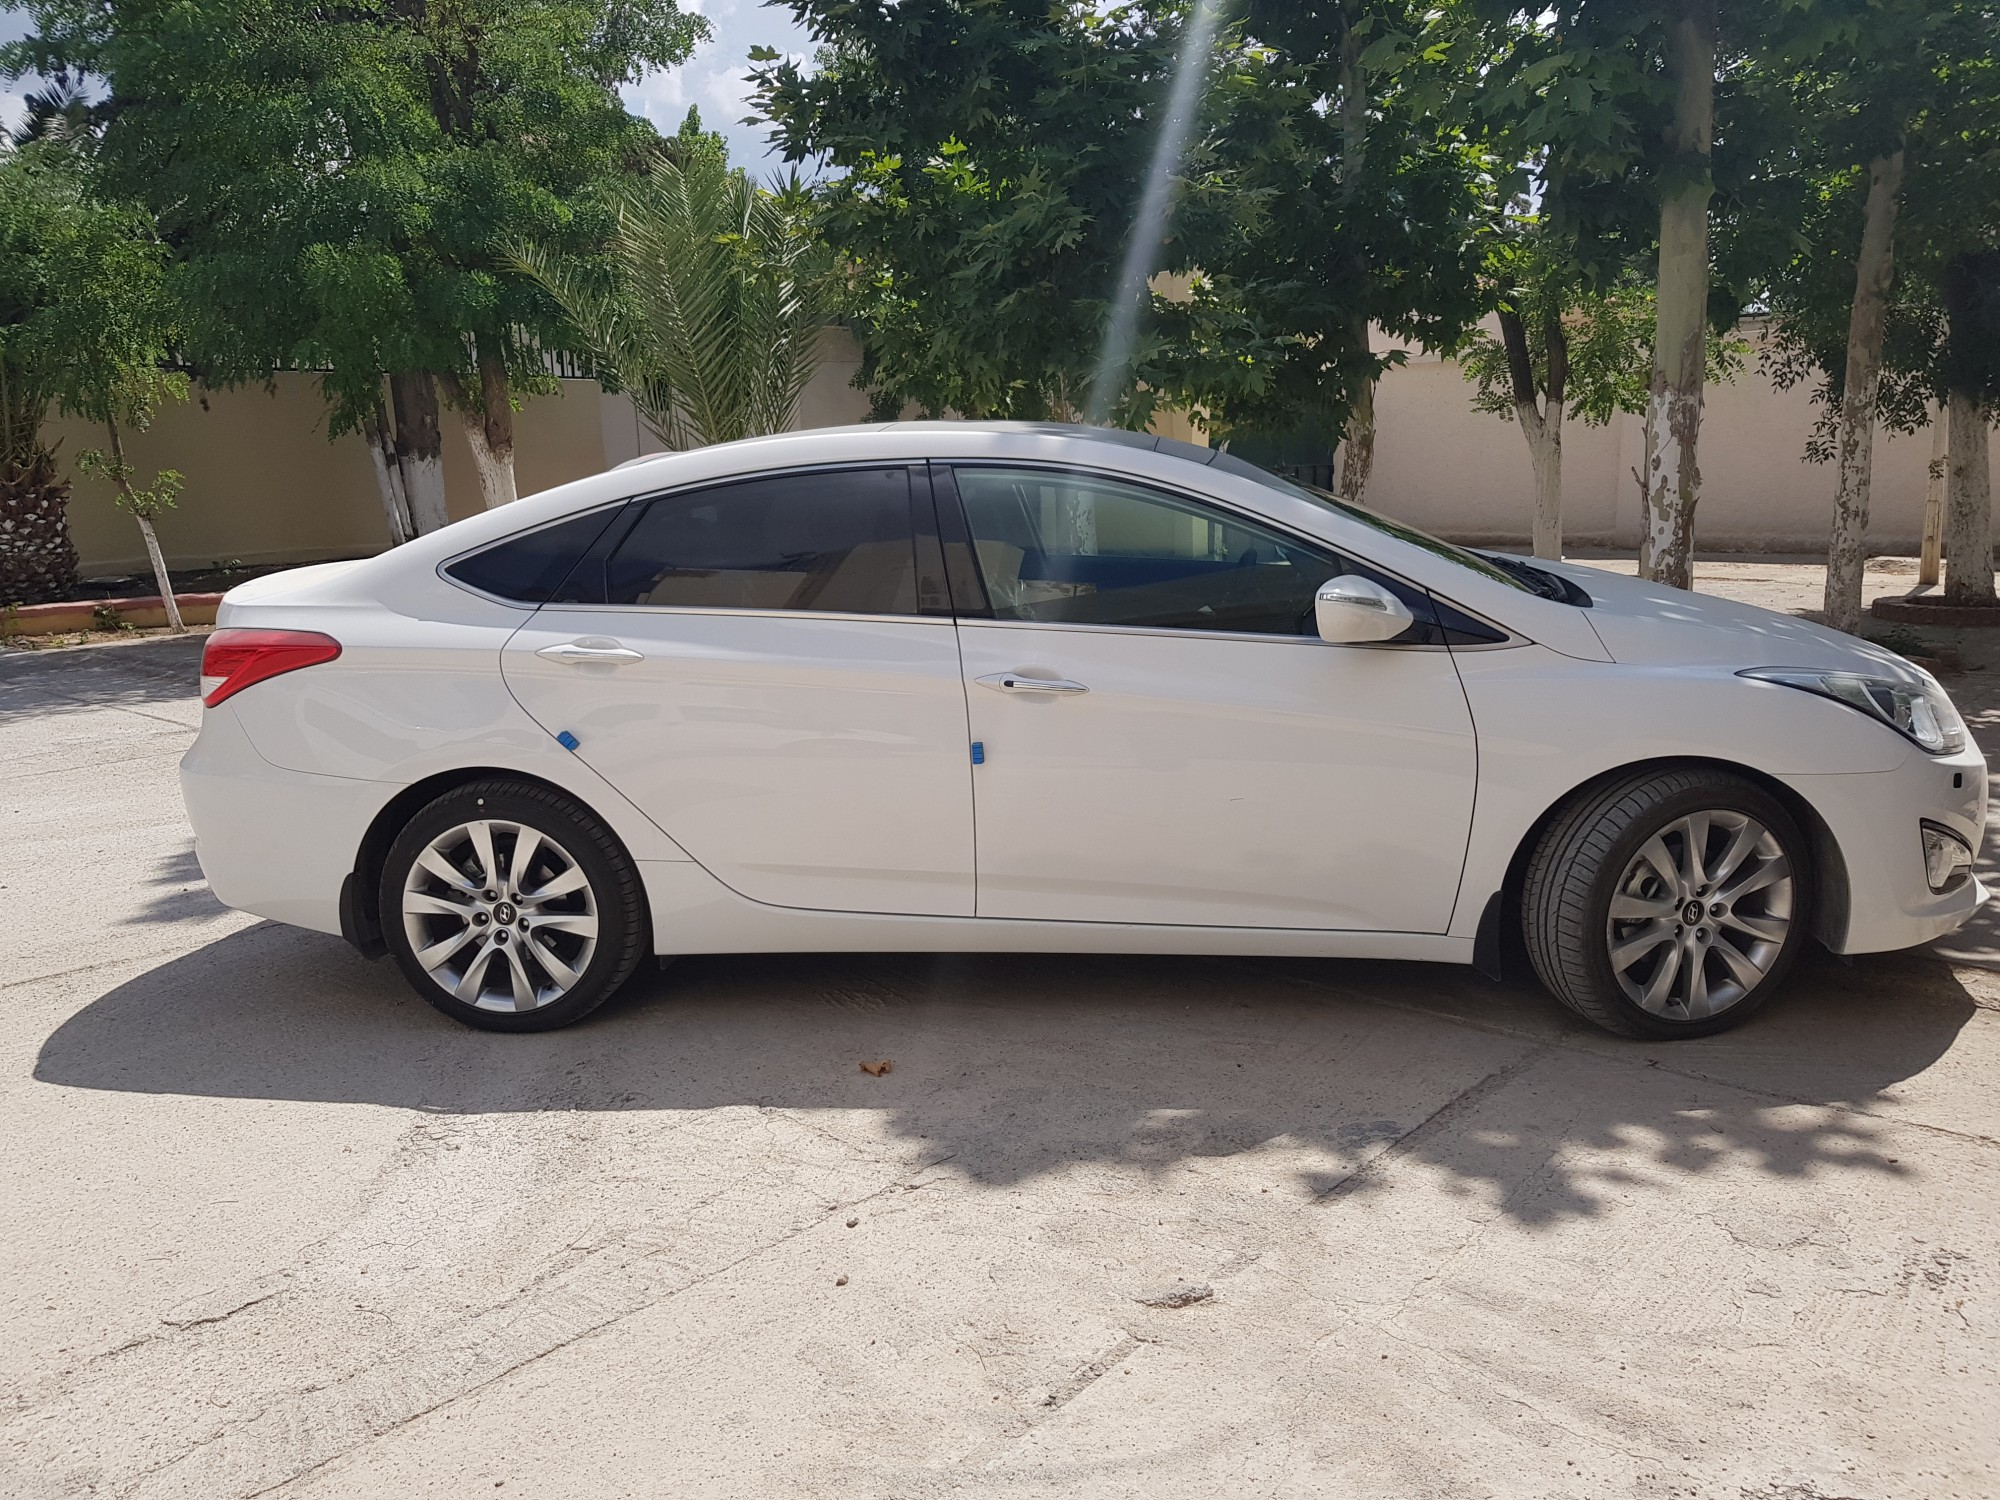 Hyundai i40 Extreme 2015 ouedkniss